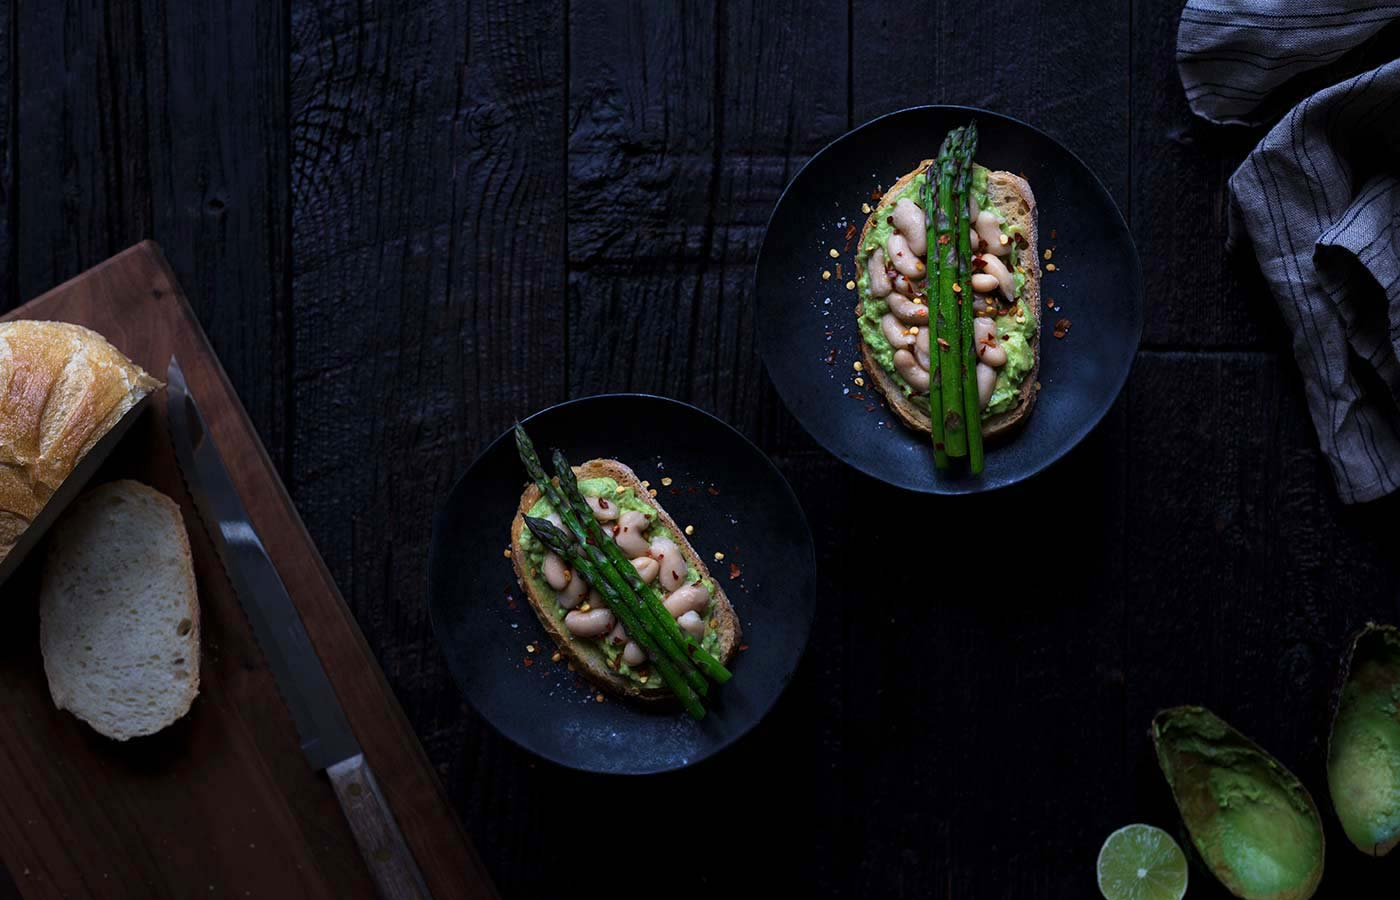 Avocado Toast with Asparagus and White Beans works as both a healthy breakfast or lunch option, and it comes together very quickly! What more can you ask for? Get the recipe from Savory Simple.